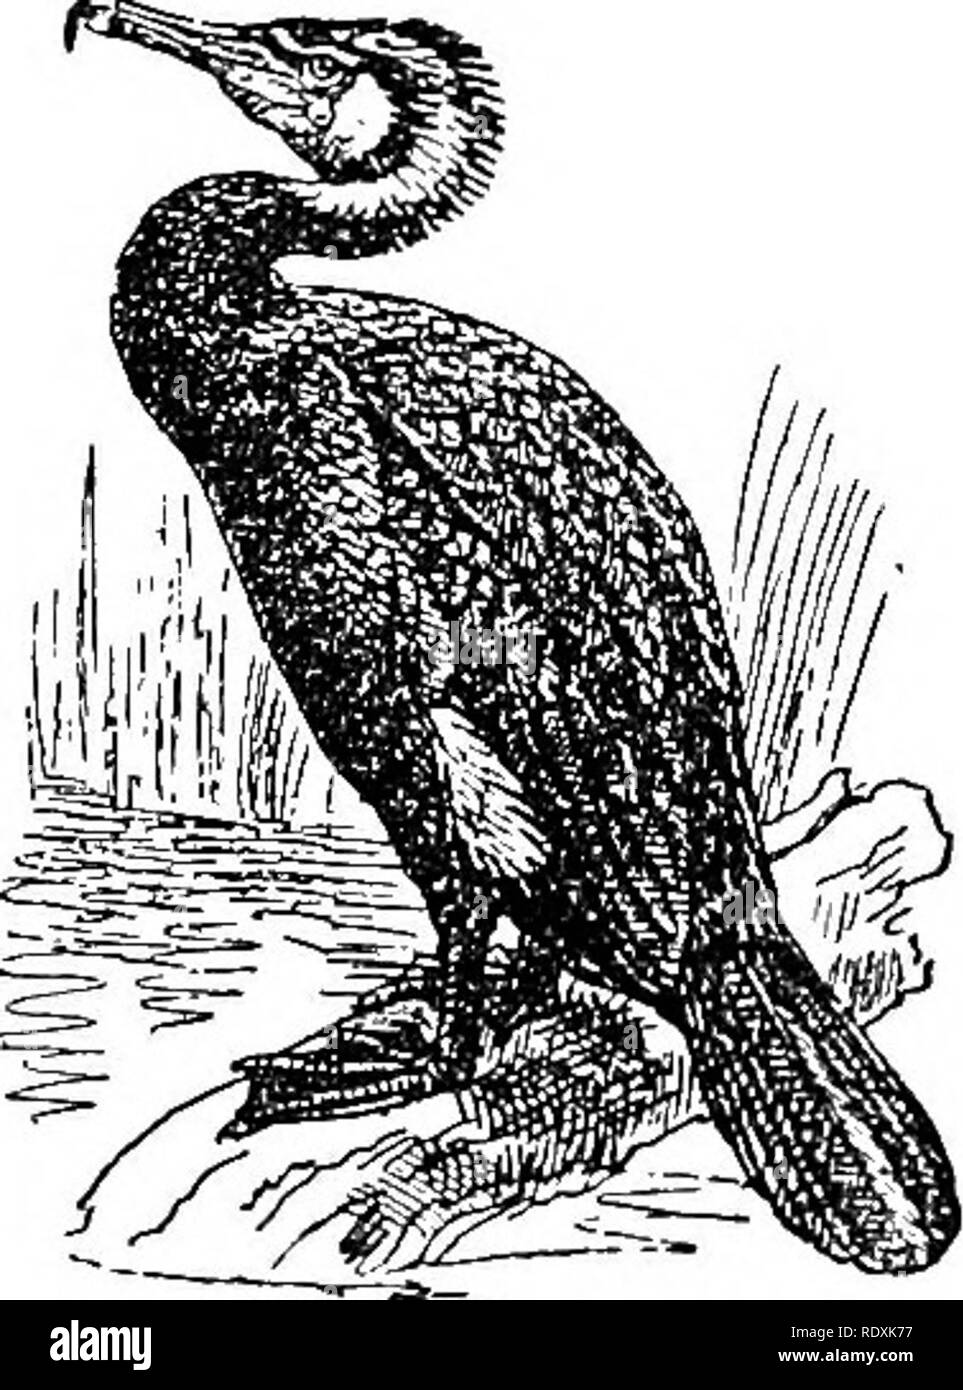 """. Natural history. Zoology. 300 A VES—ORDER PELECANIFORMES. our Common Cormorant has white filamentous plumes distributed over the head and neck, as well as an ornamental white patch just above the thighs. The way in which Cormorants and Shags feed their young is very curious, and is well described by Sir Walter Buller. Writing of the Pied Shag of New Zealand (P. rarms), he says :— """" We found the Shags in great force, and it was most interesting to watch the operations of buth old and young birds. There were 80 or 100 nests, many of which were vacant owing to the lateness of our visit, th - Stock Image"""